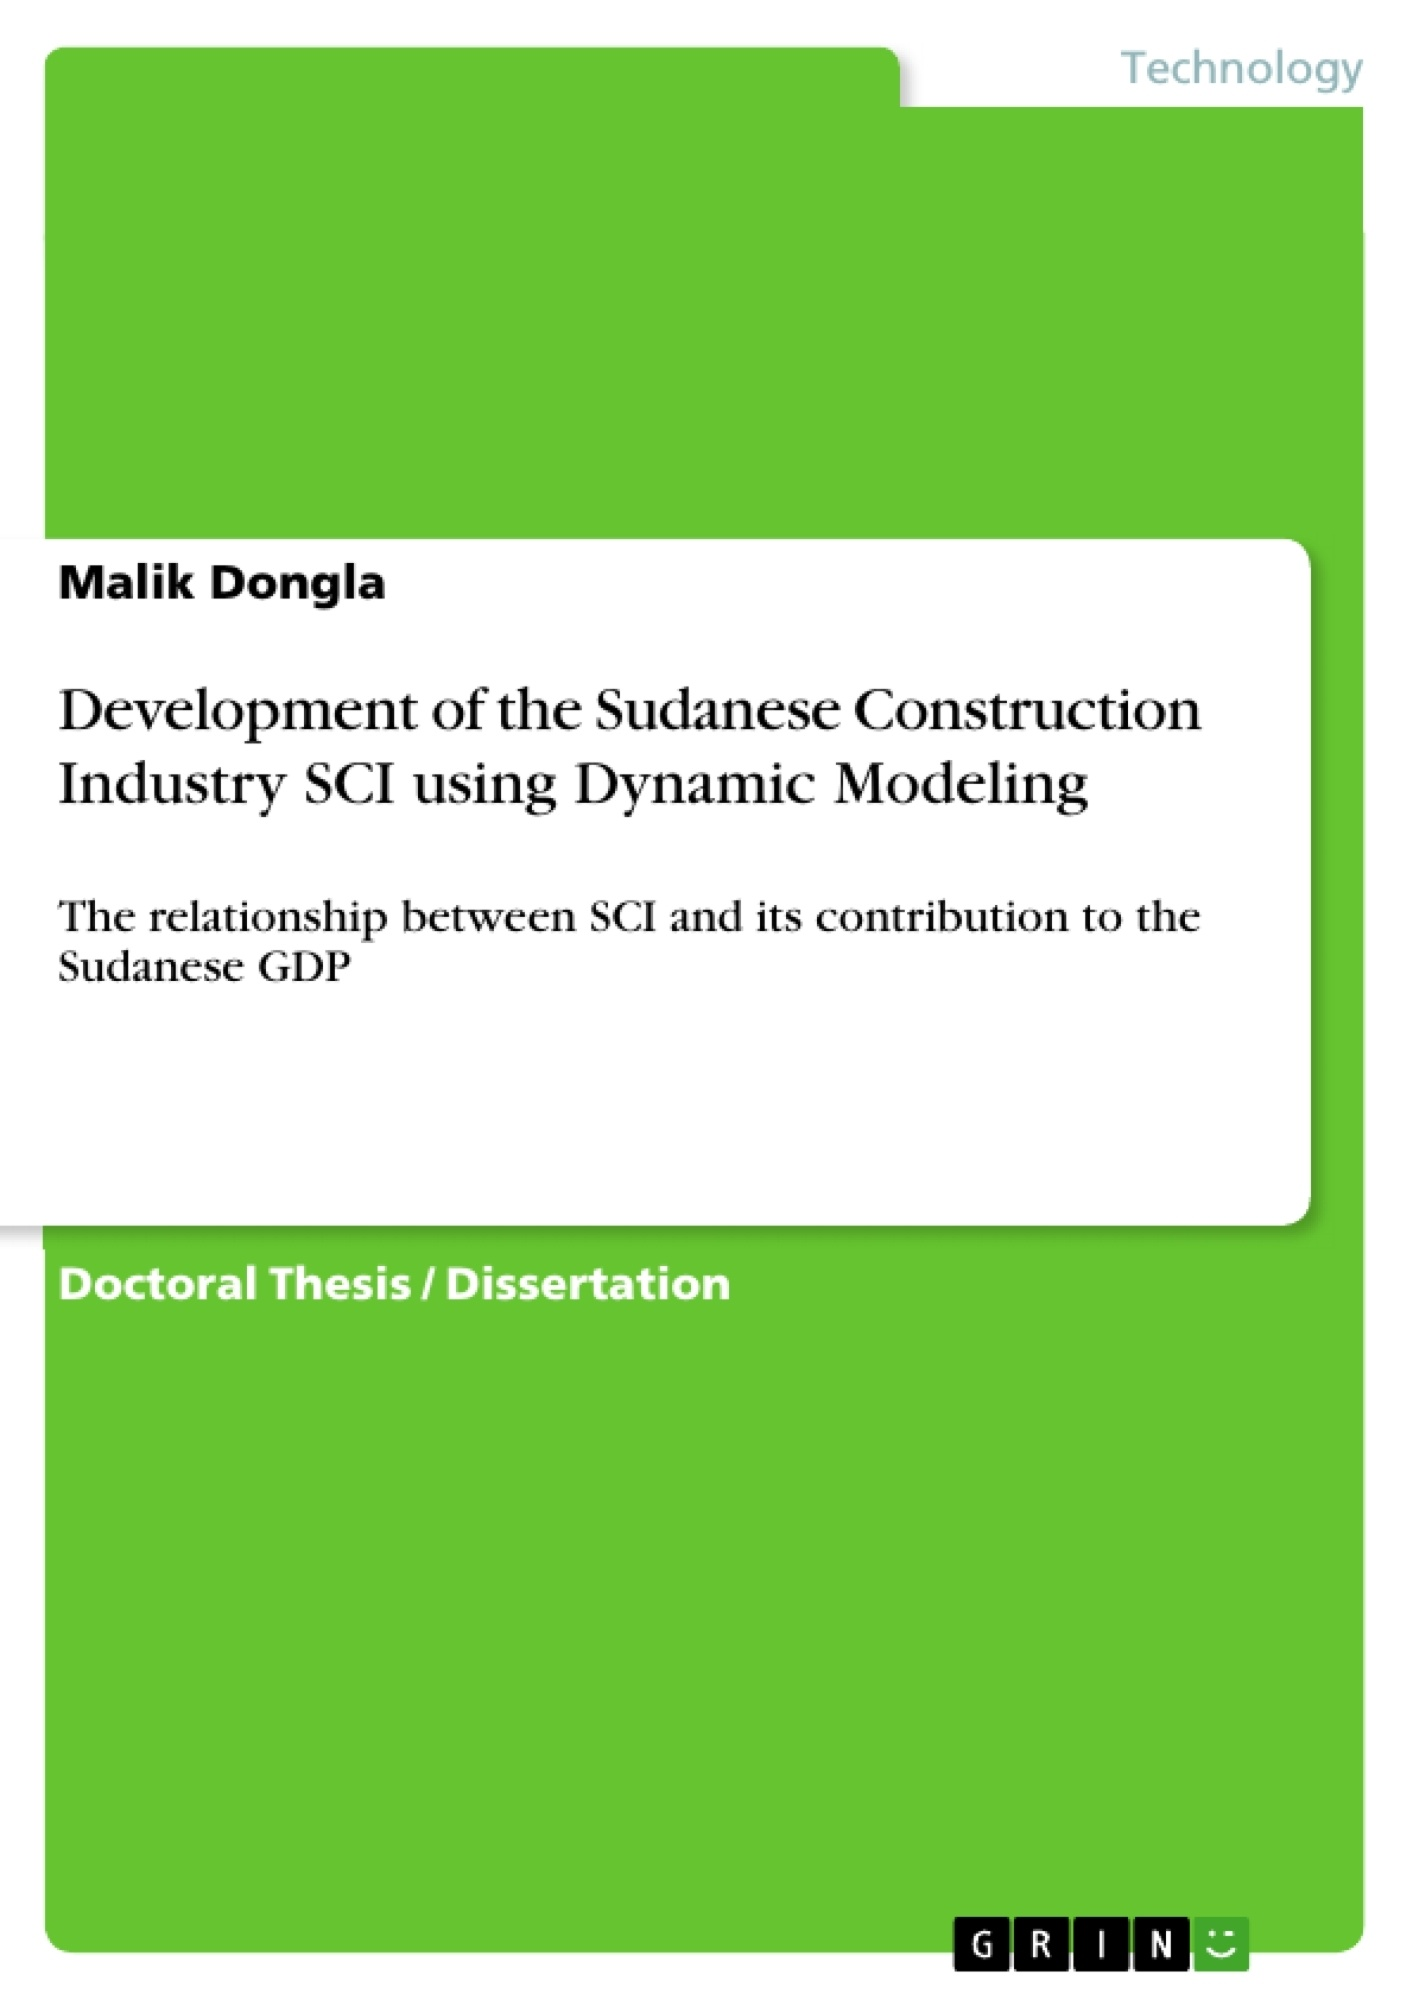 Title: Development of the Sudanese Construction Industry SCI using Dynamic Modeling